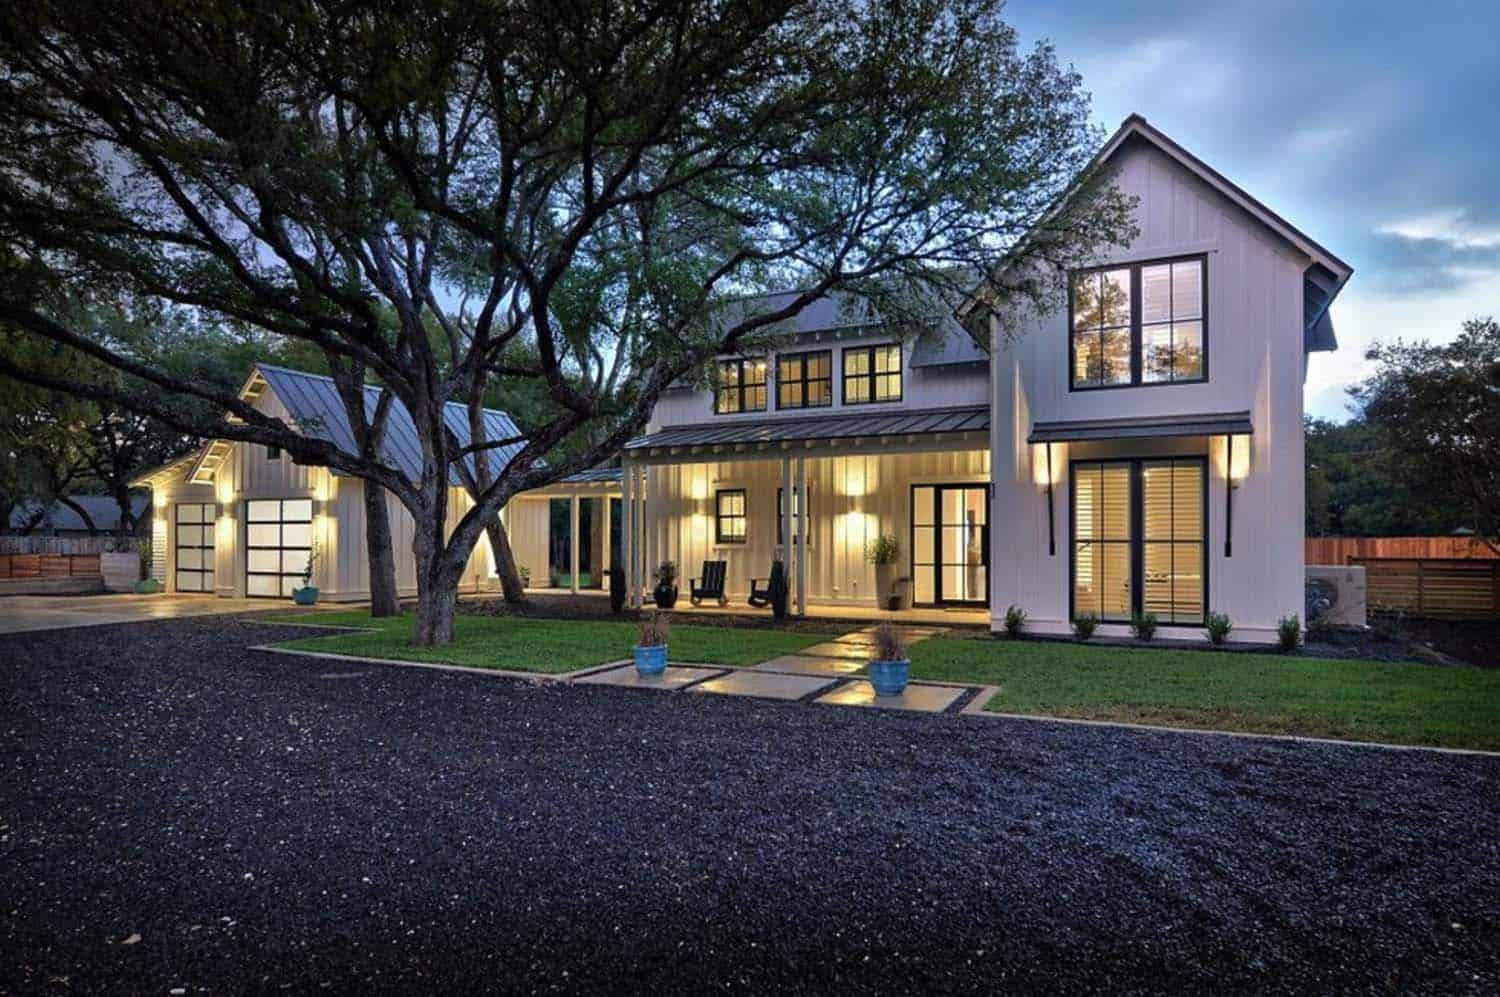 Modernized texas farmhouse filled with eye catching details for Architectural designs farmhouse